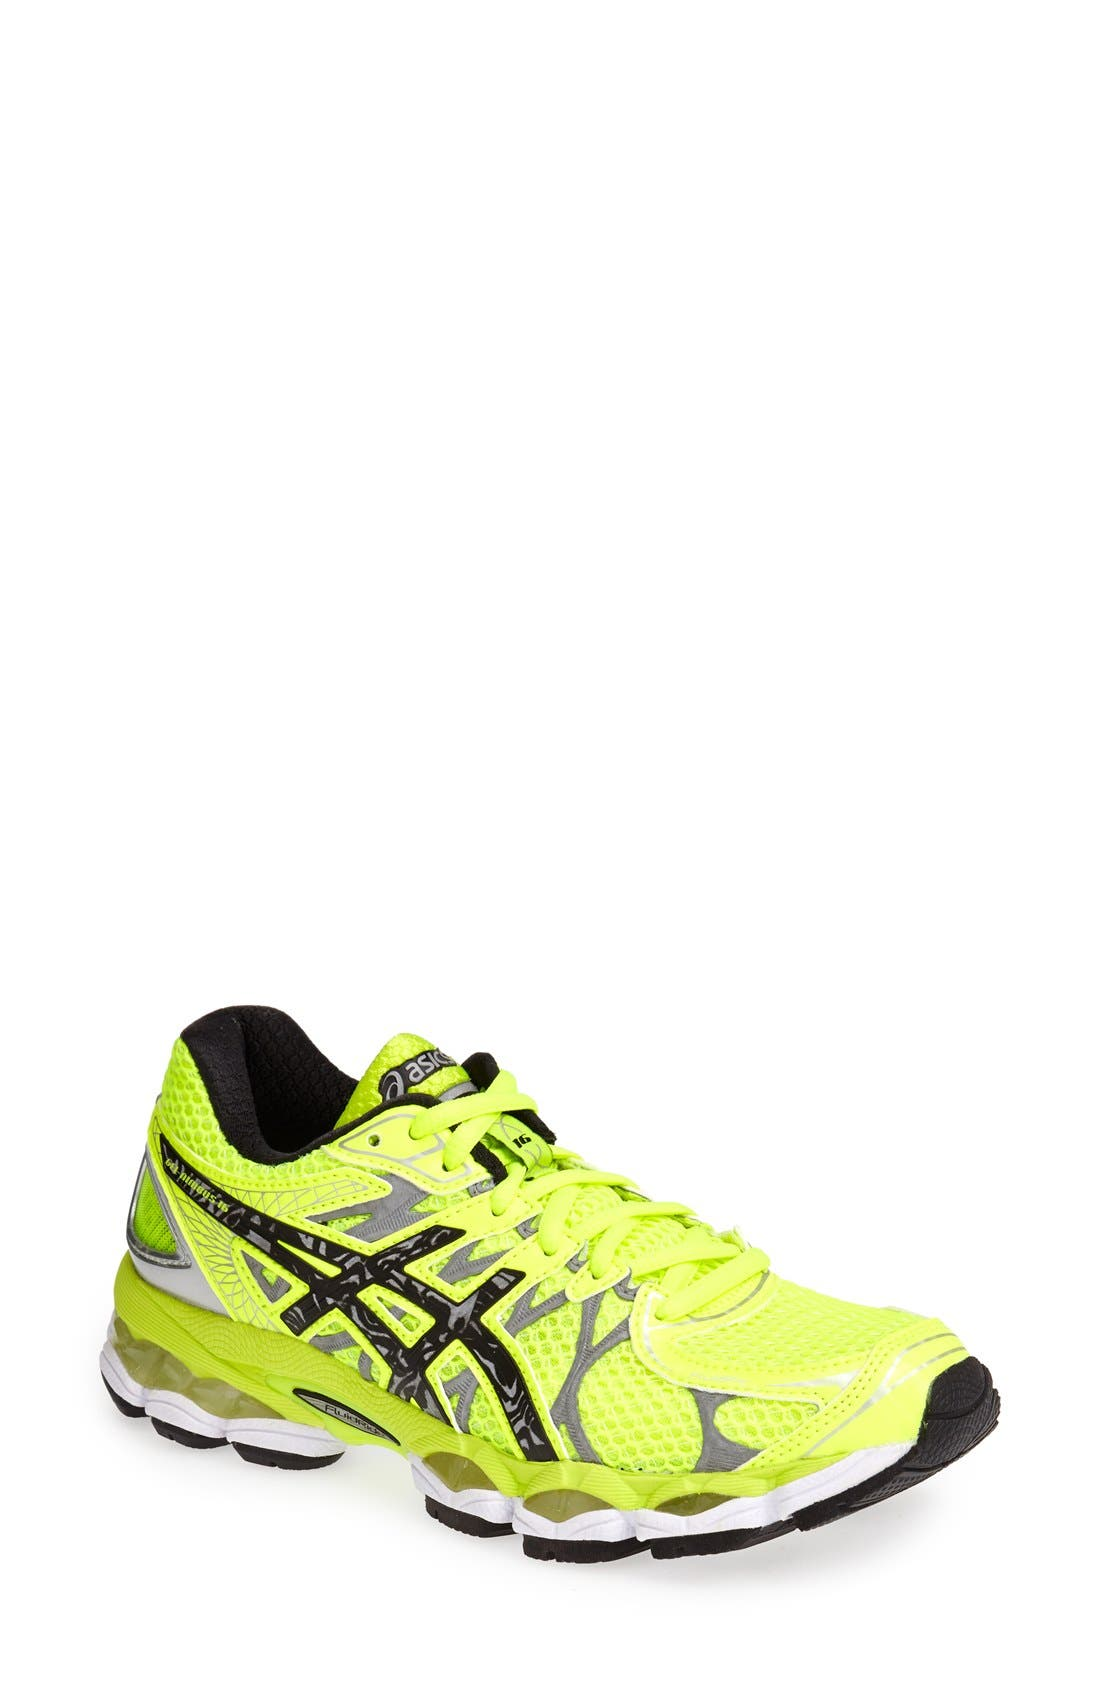 Main Image - ASICS® 'GEL-Nimbus 16 Lite-Show' Running Shoe (Women)